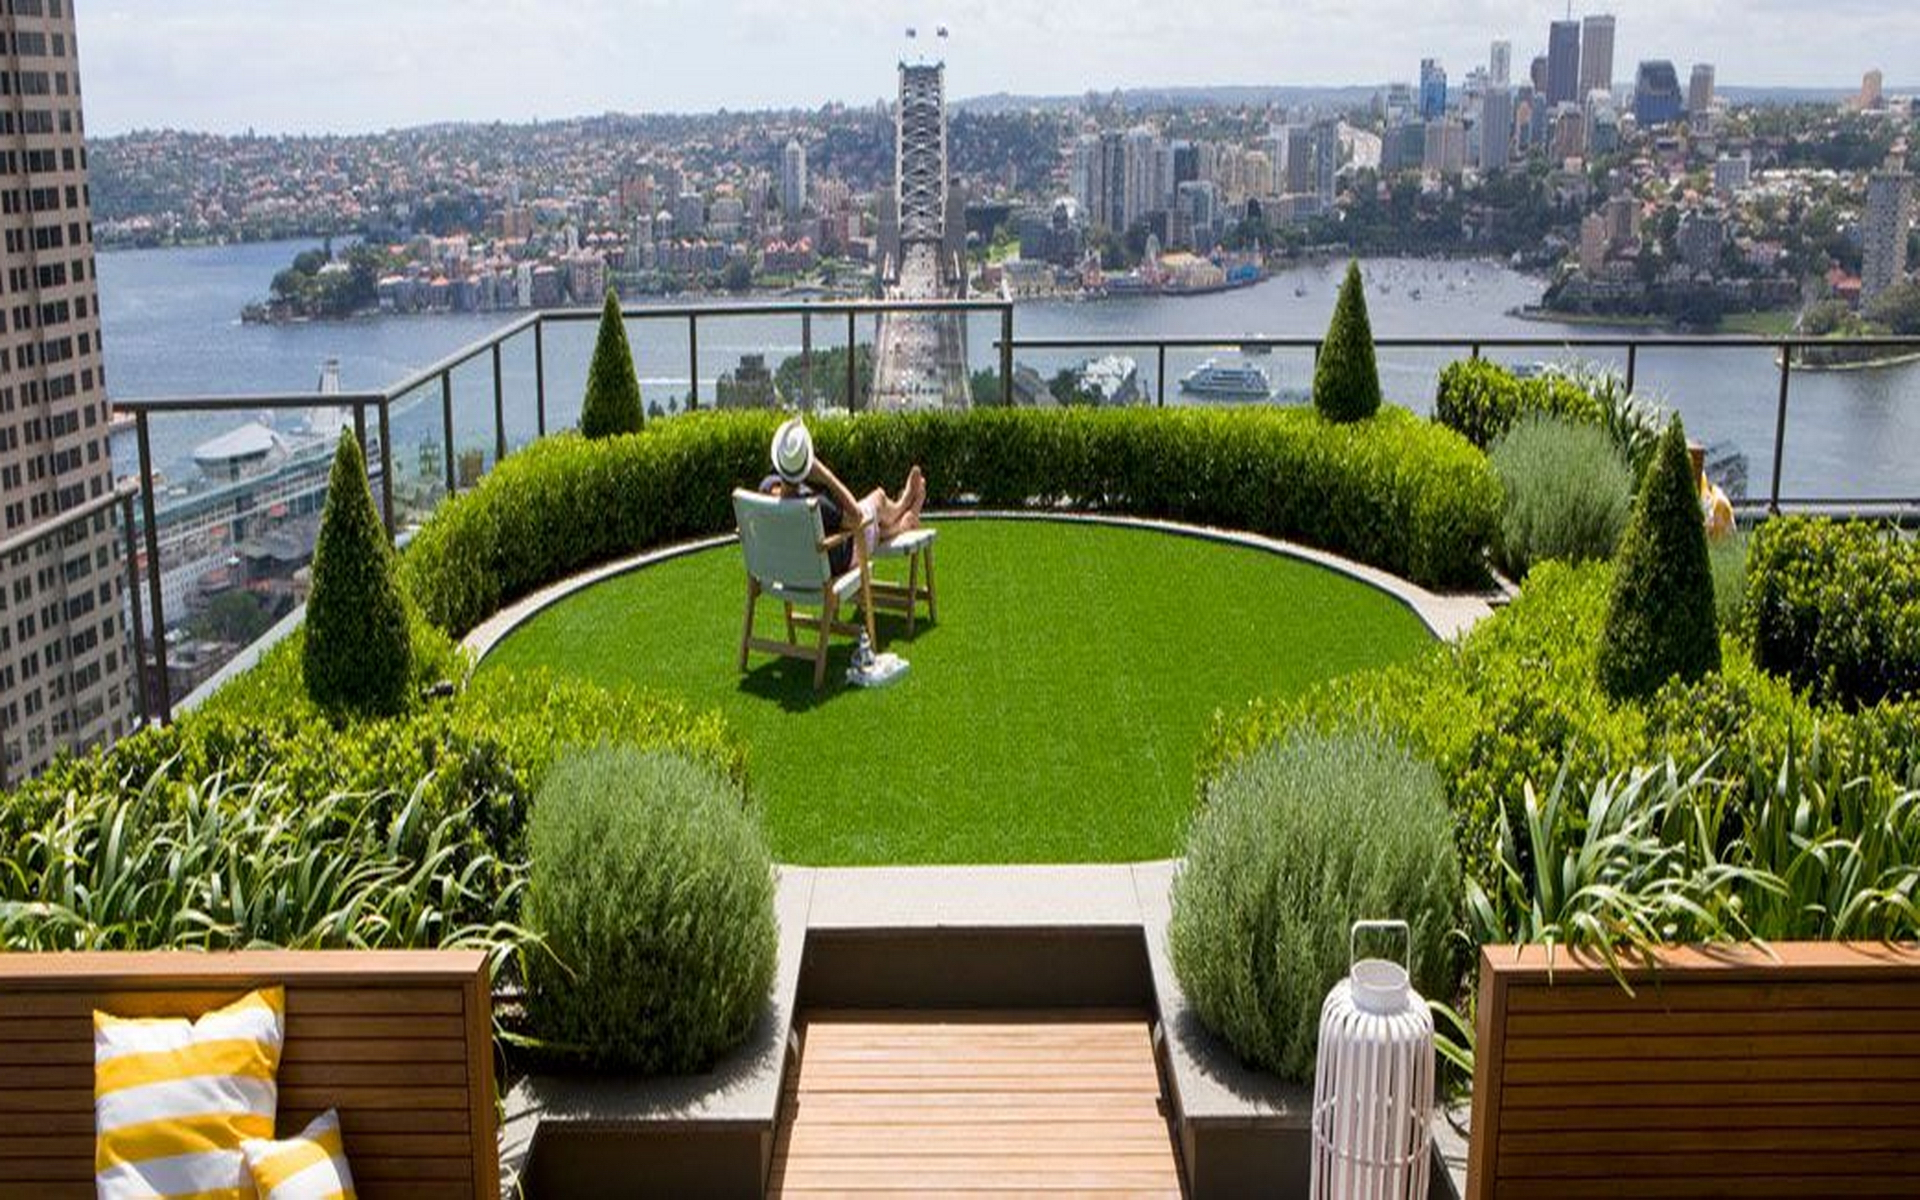 incredible-garden-on-rooftop-ideas-green-planter-and-flowers